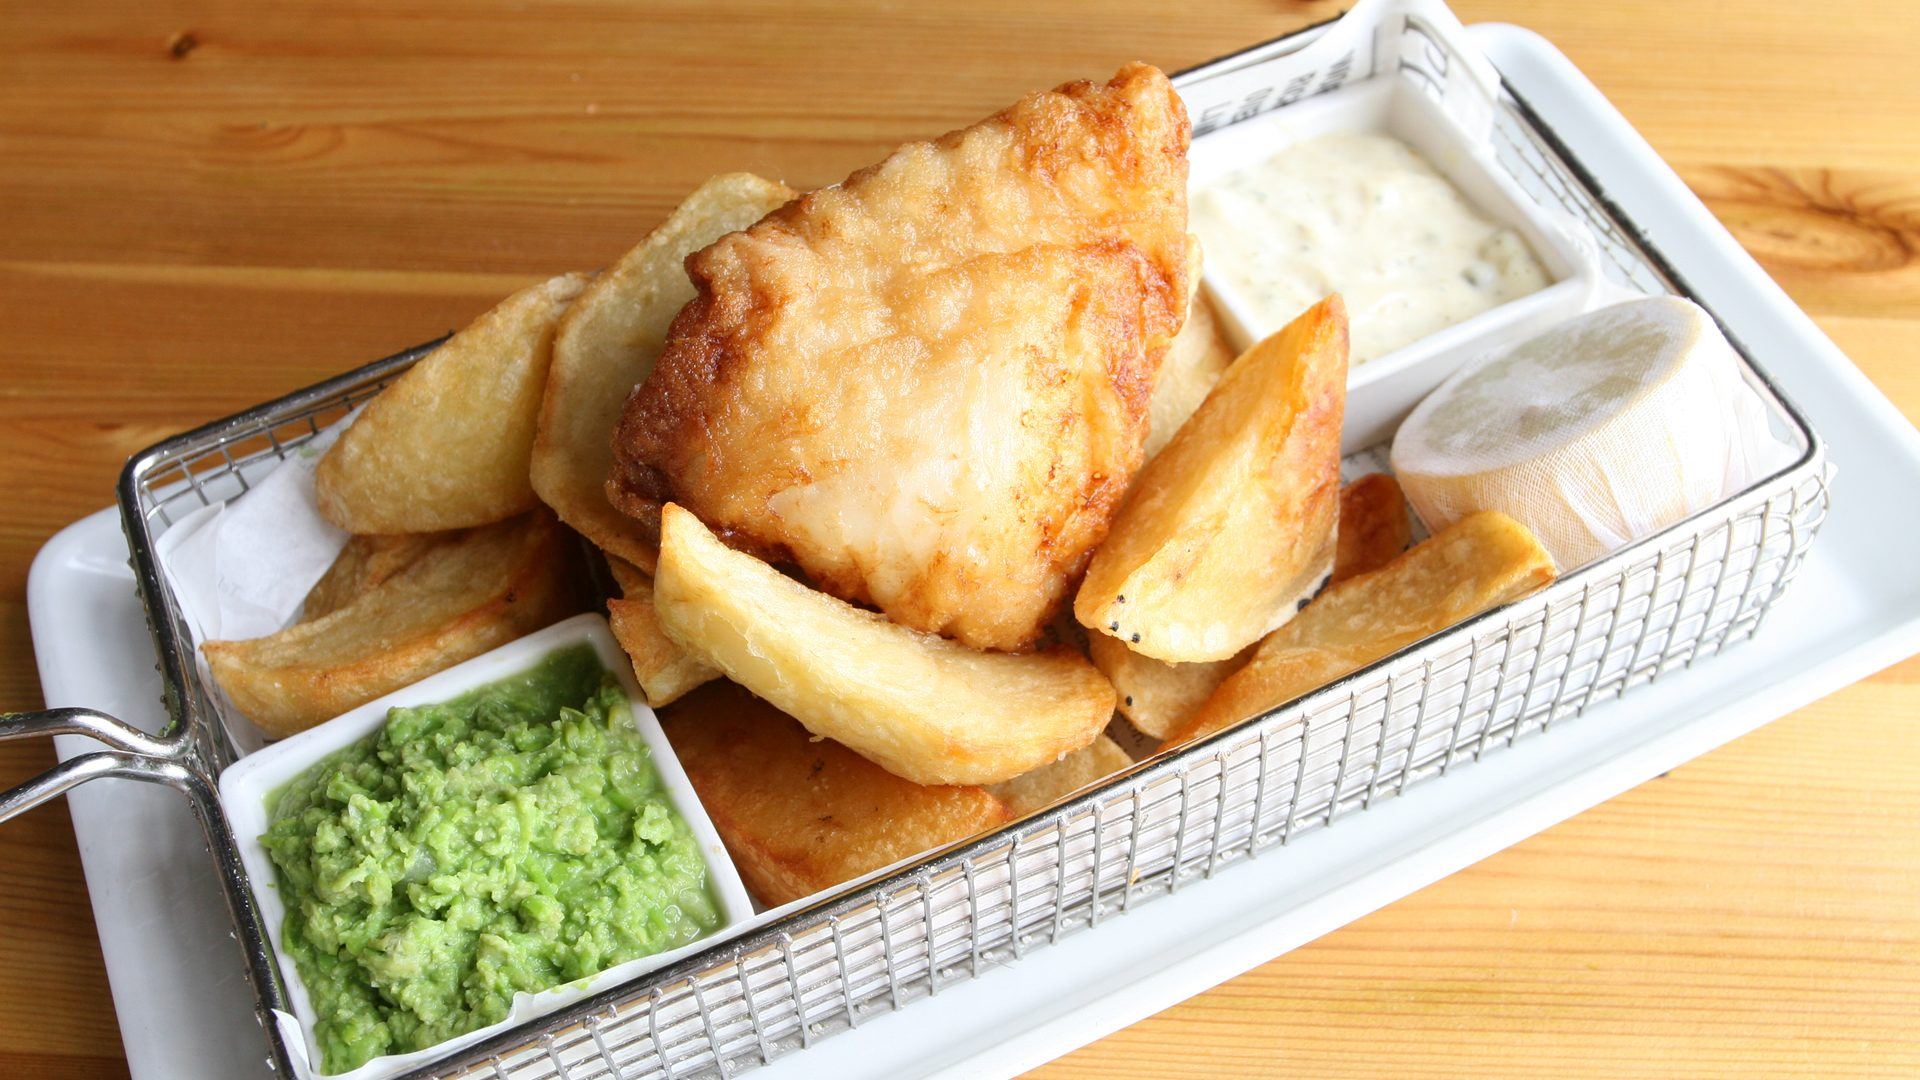 Tuesday Nights: Fish & Chips for £7? Yes Please... Served from 6.30pm